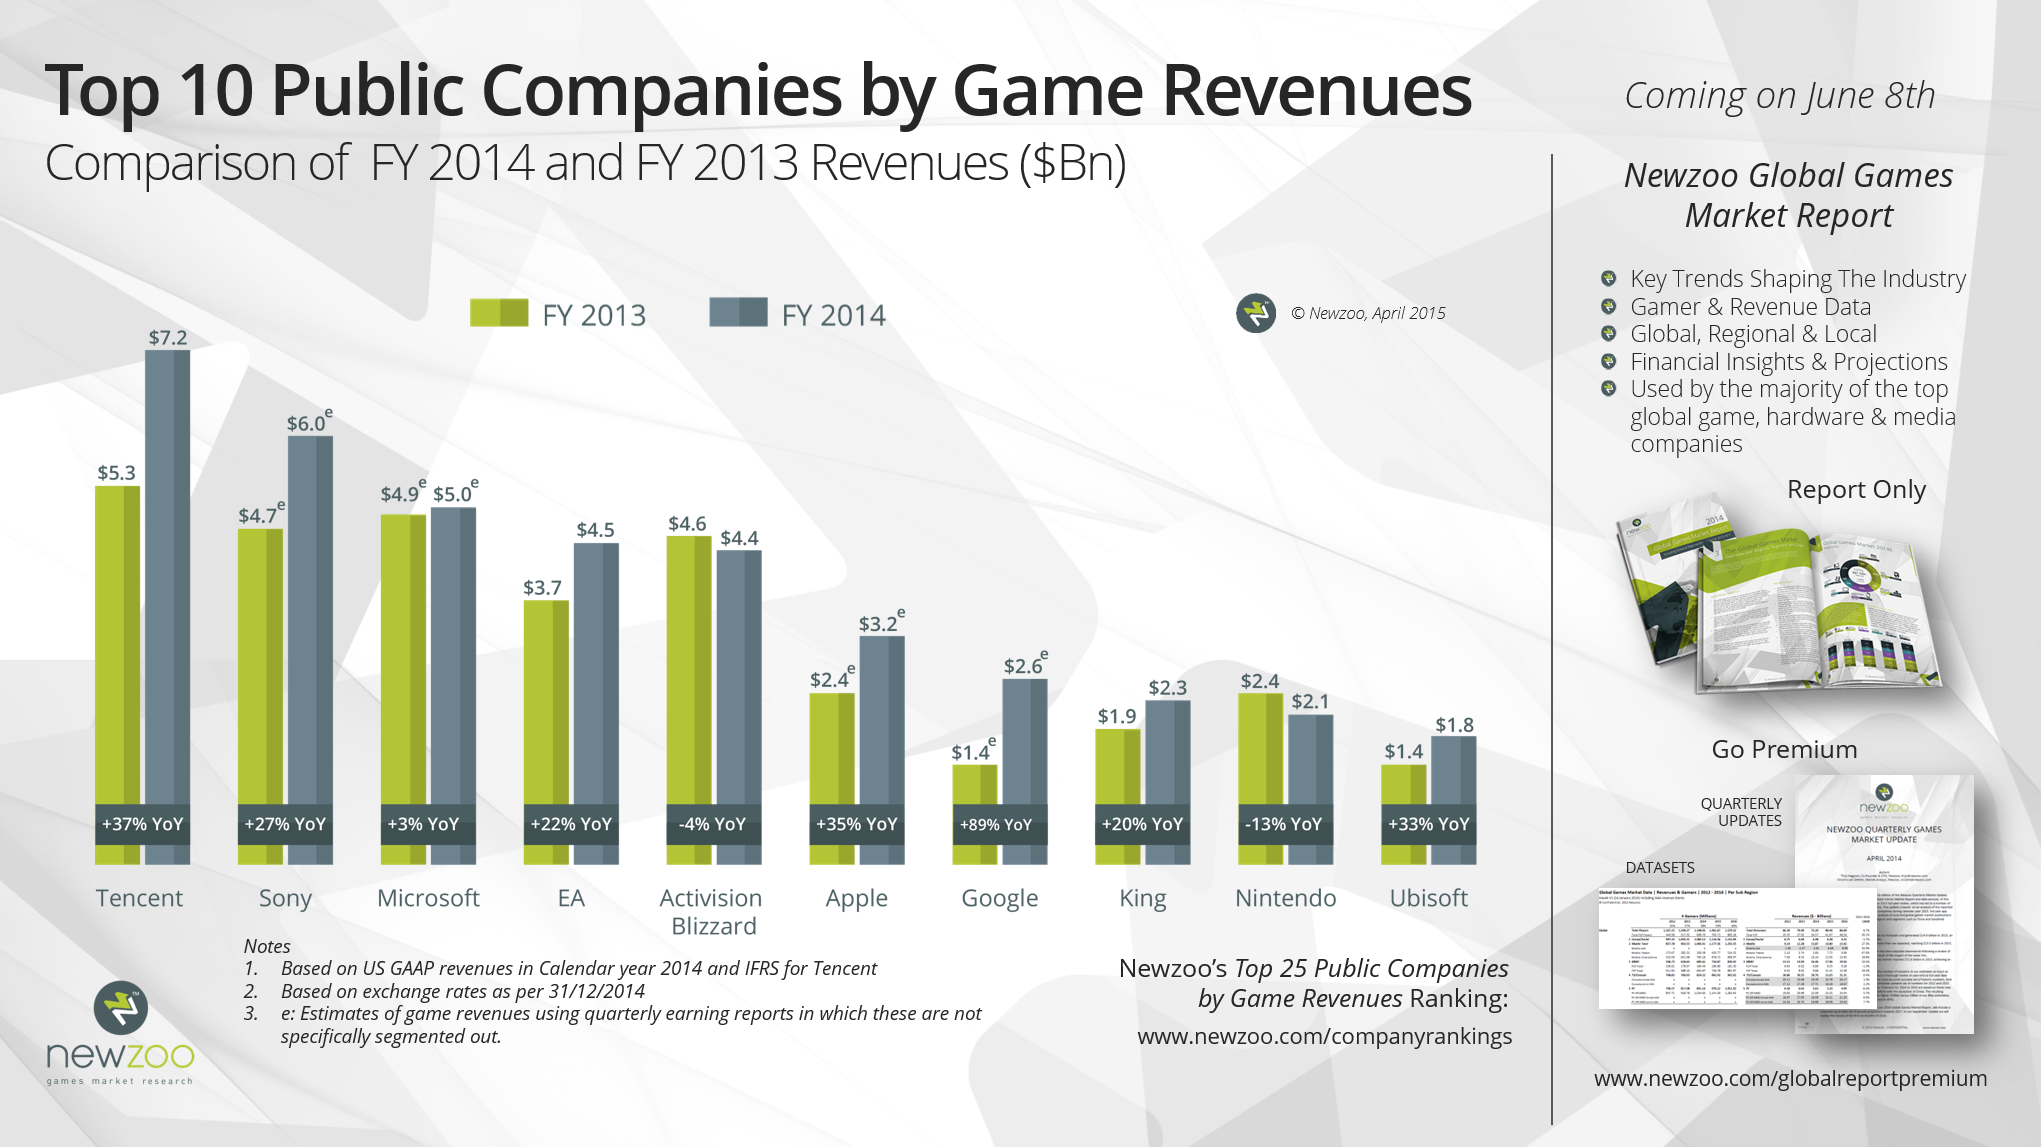 Newzoo_Top10_Public_Companies_Game_Revenues_FY2014_v2